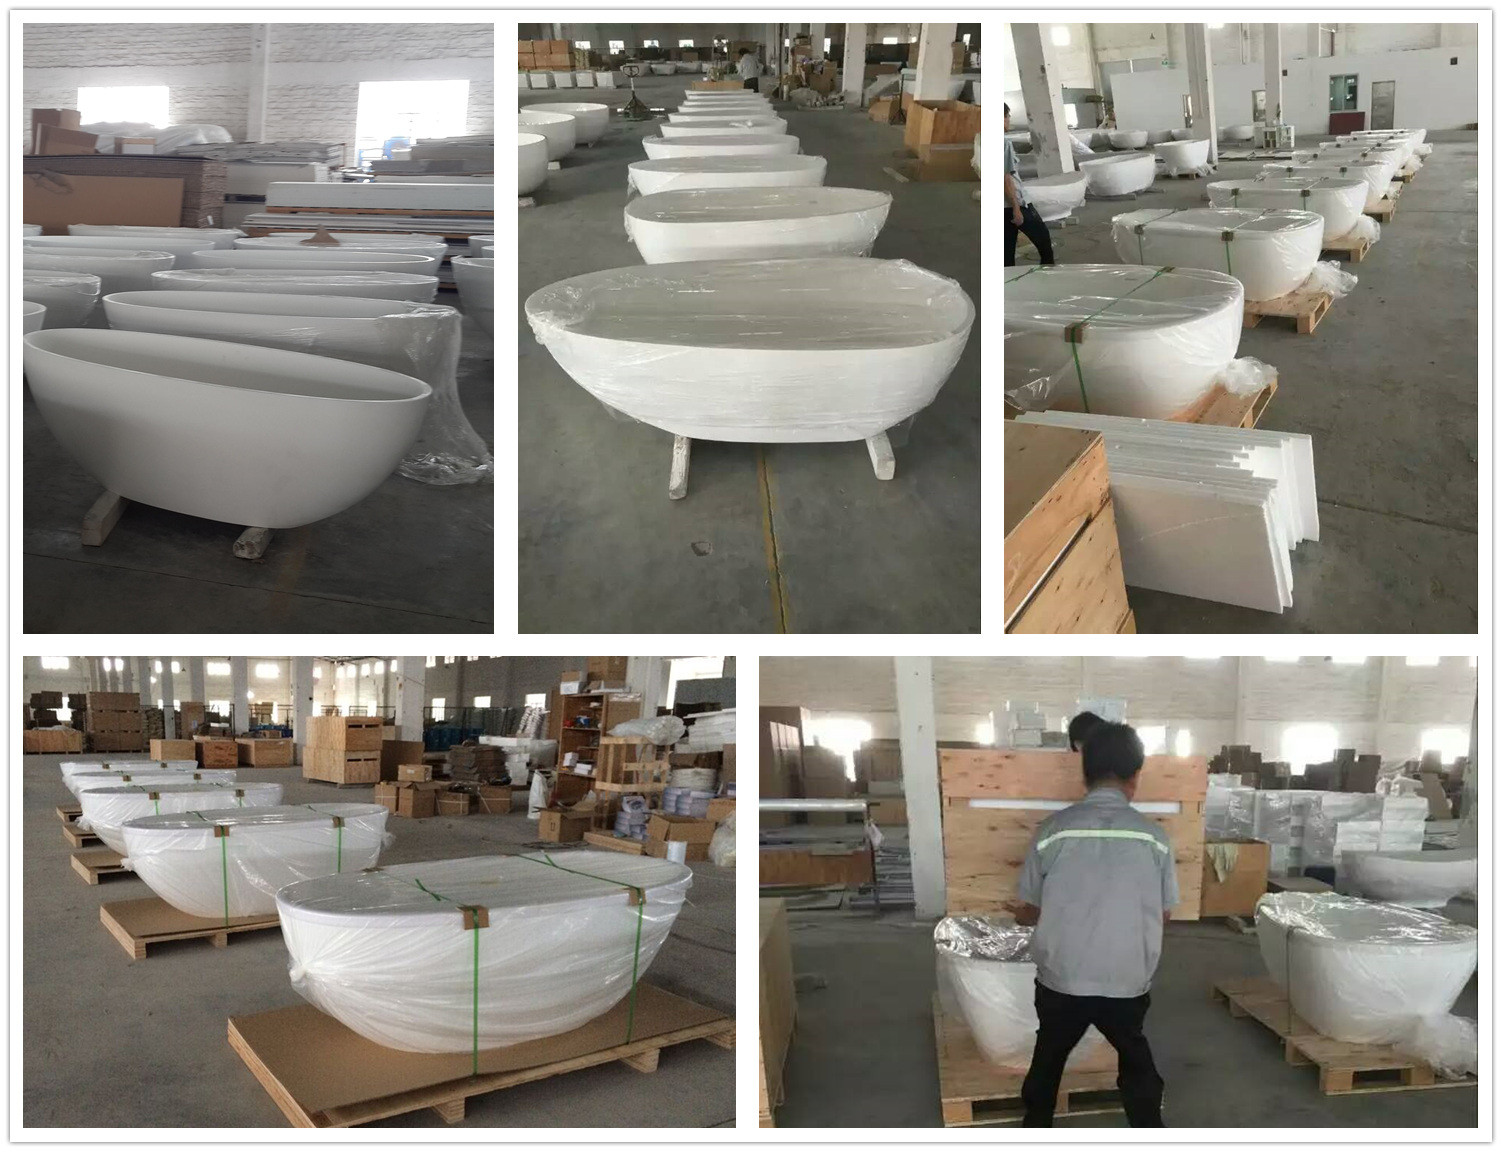 Bellissimo-Shoe Shaped Stone Resin Solid Surface freestanding bathtub-9